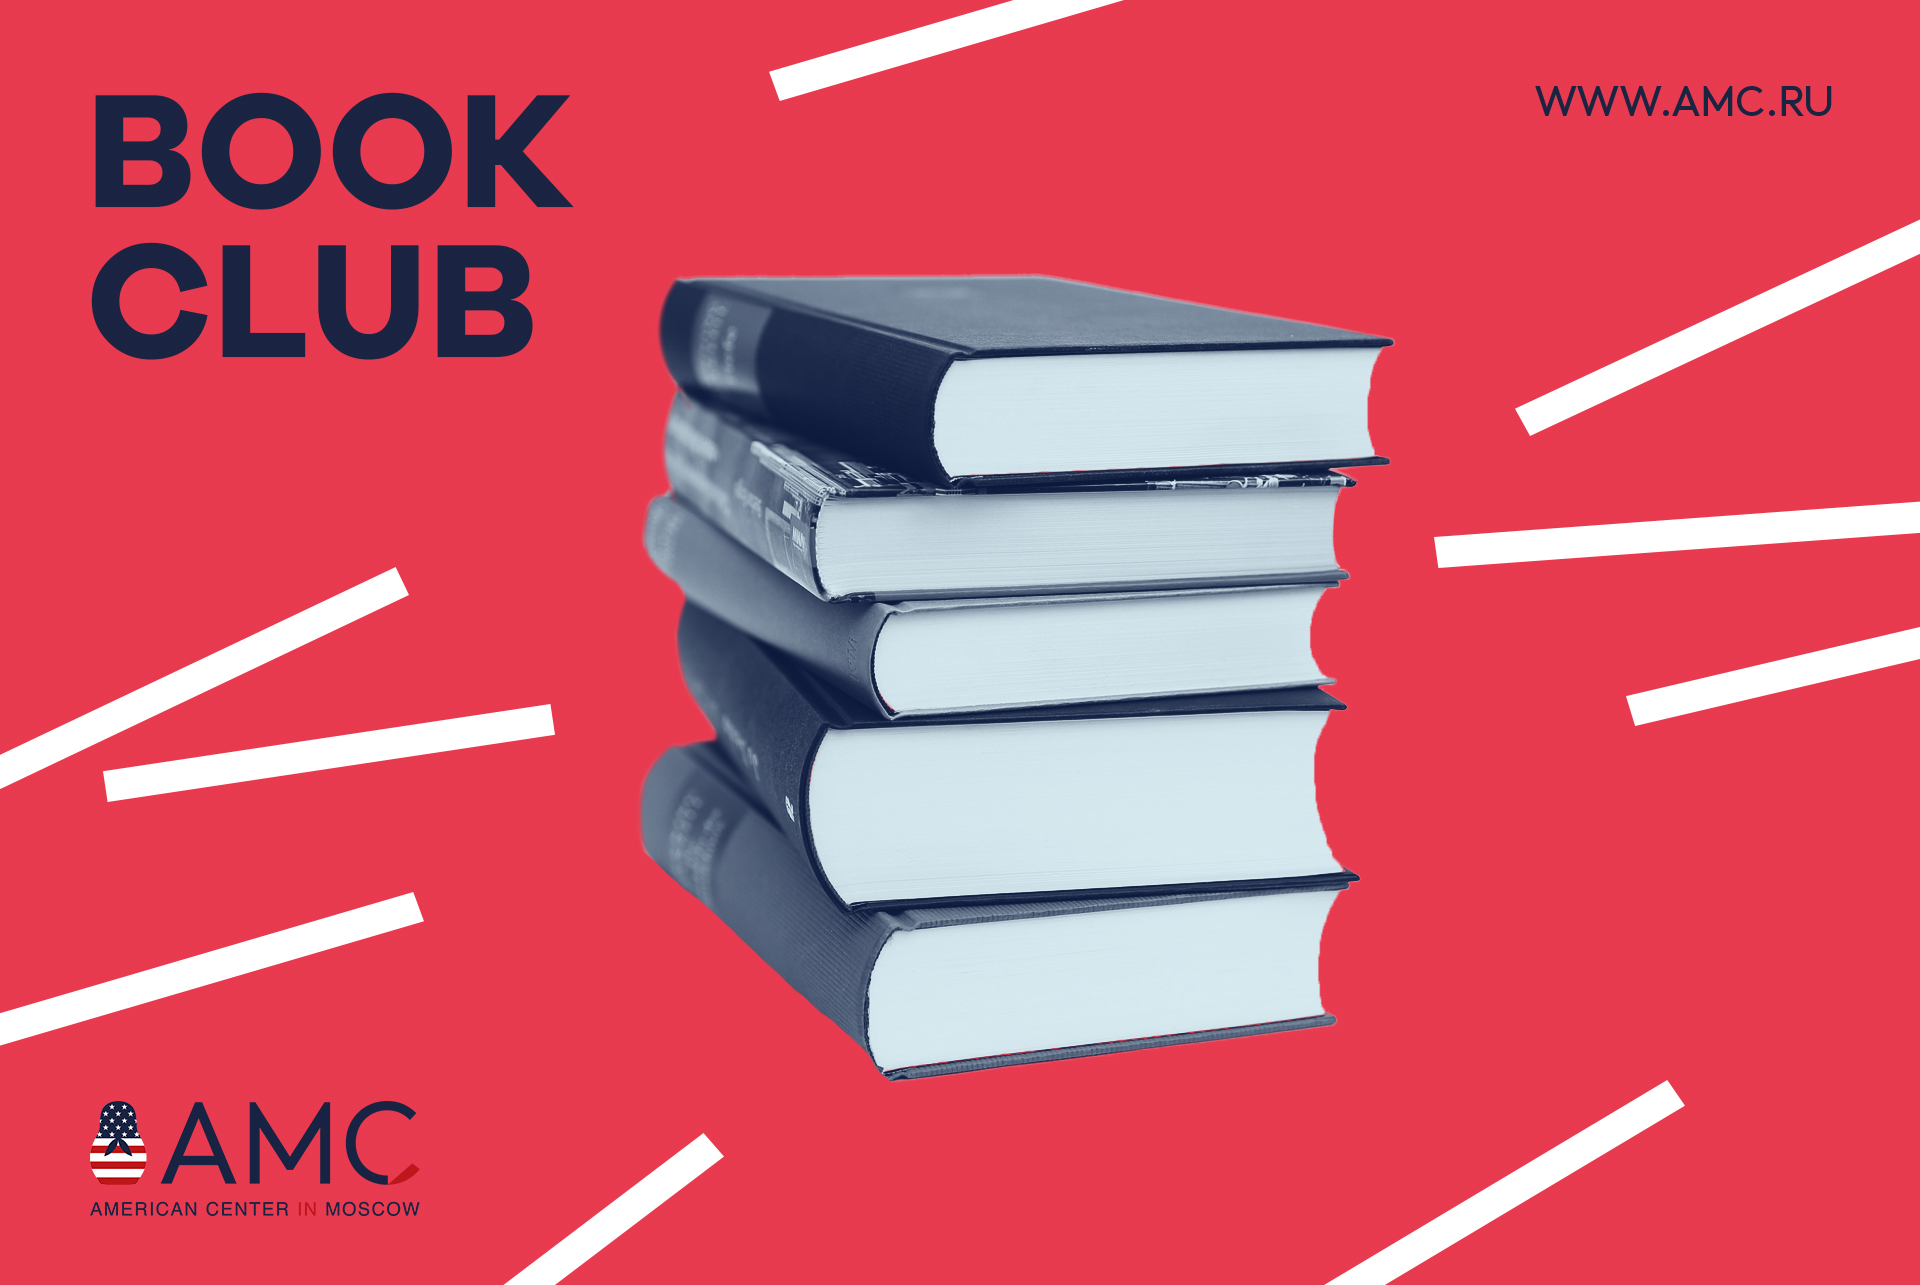 AMC Book Club